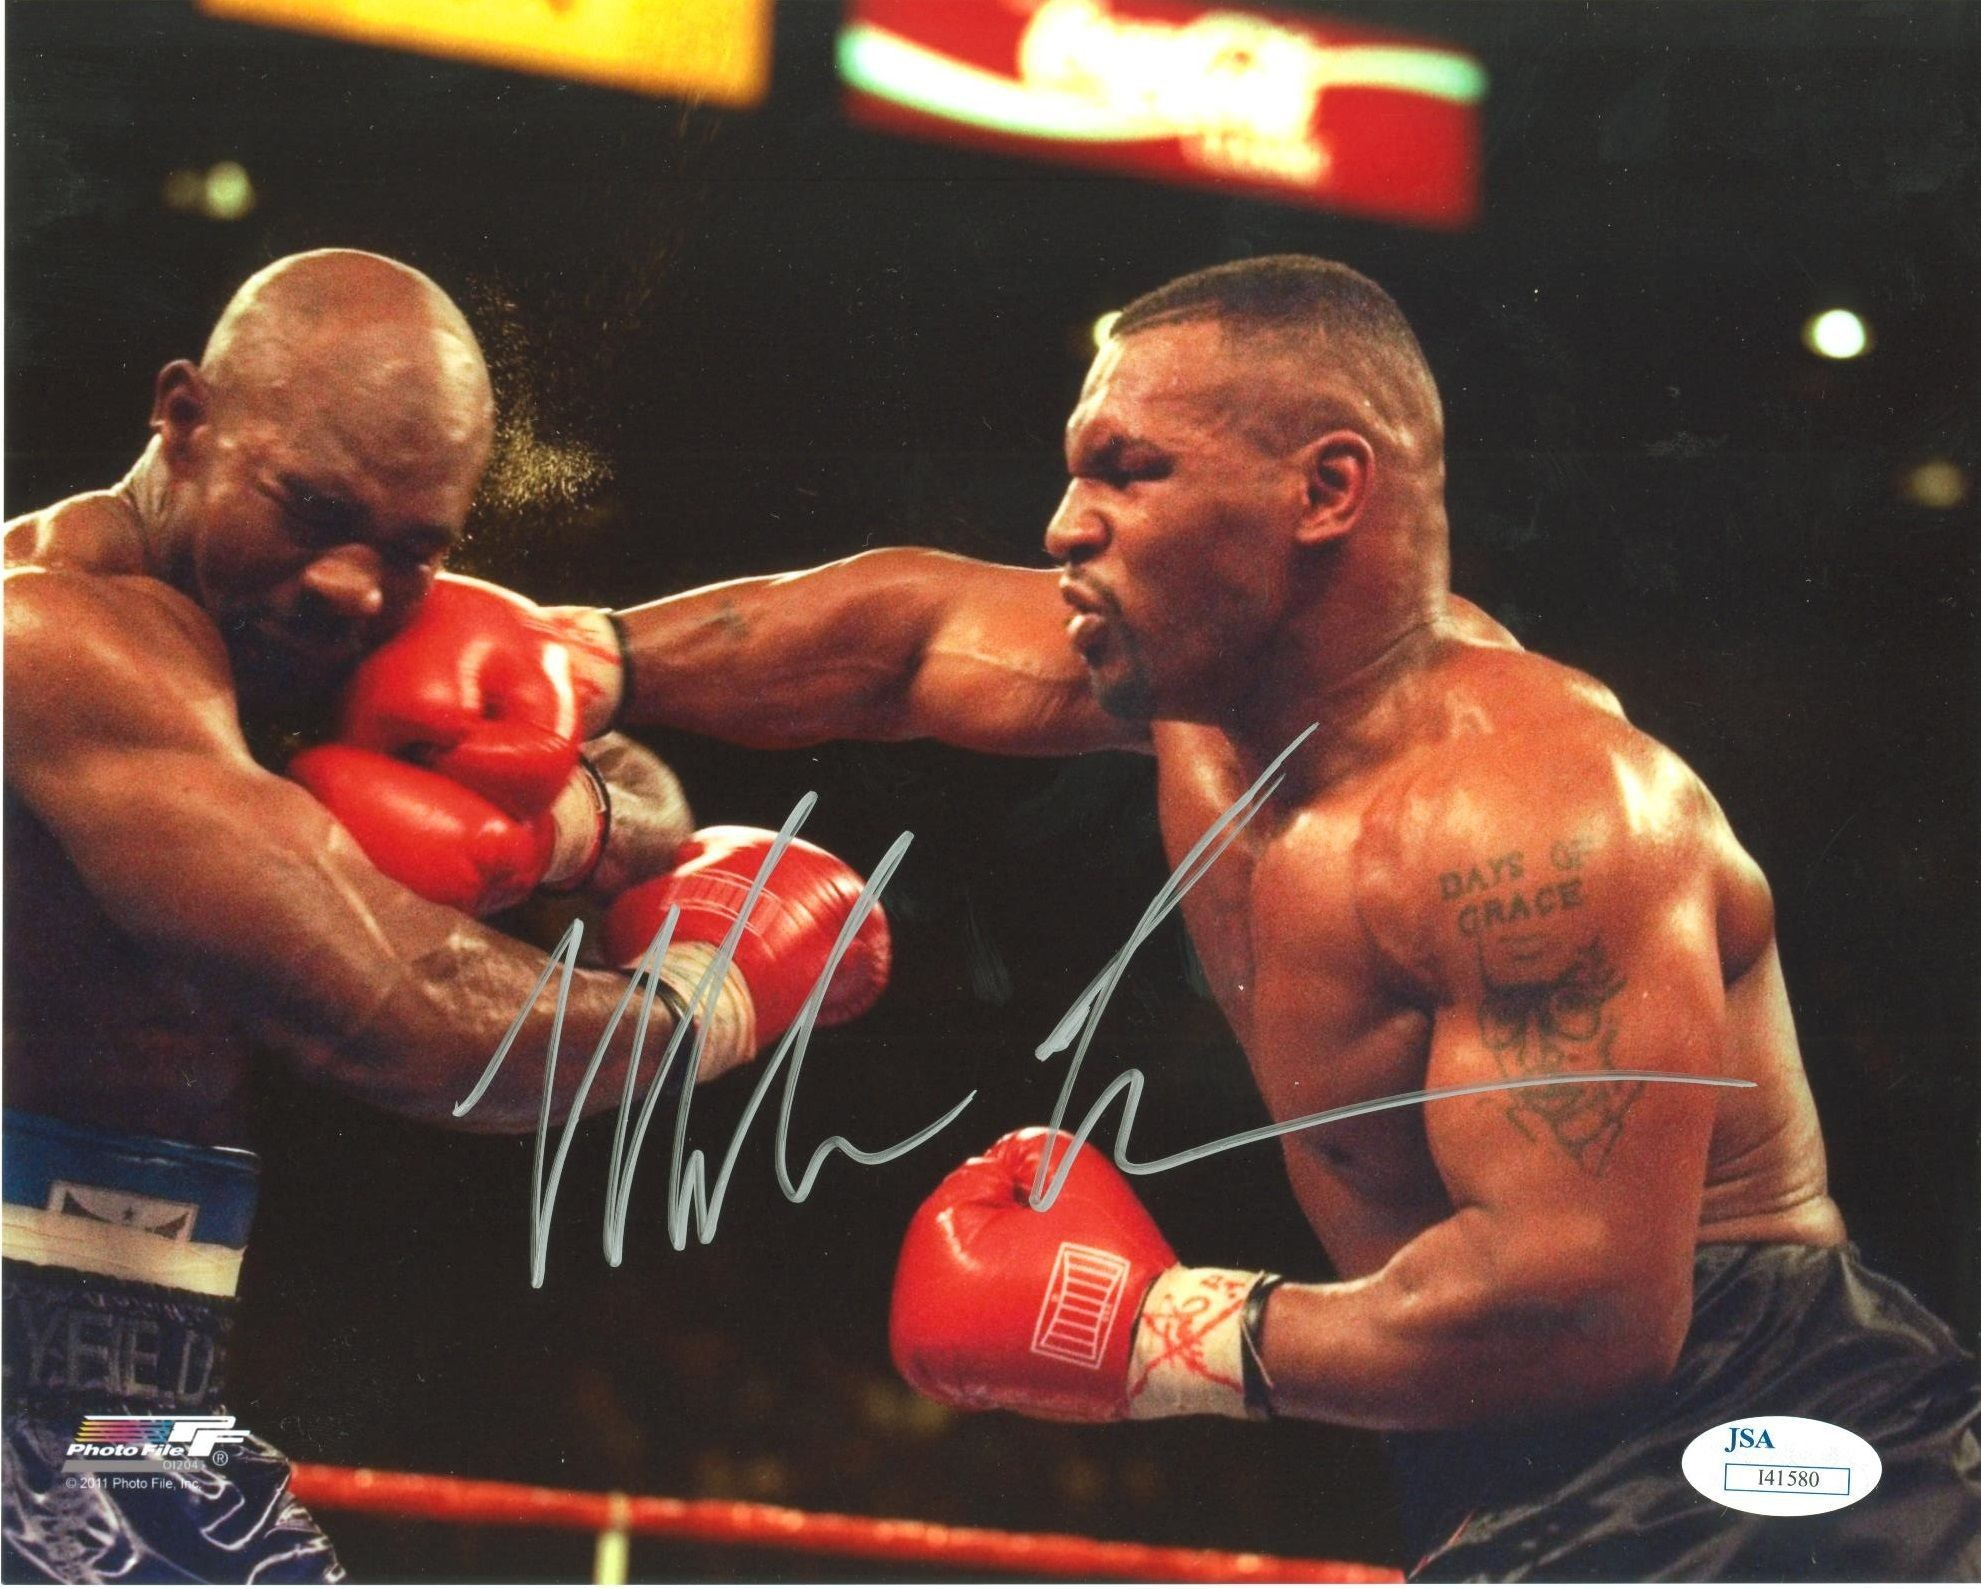 1981x1589 Mike tyson in a middle of the fight